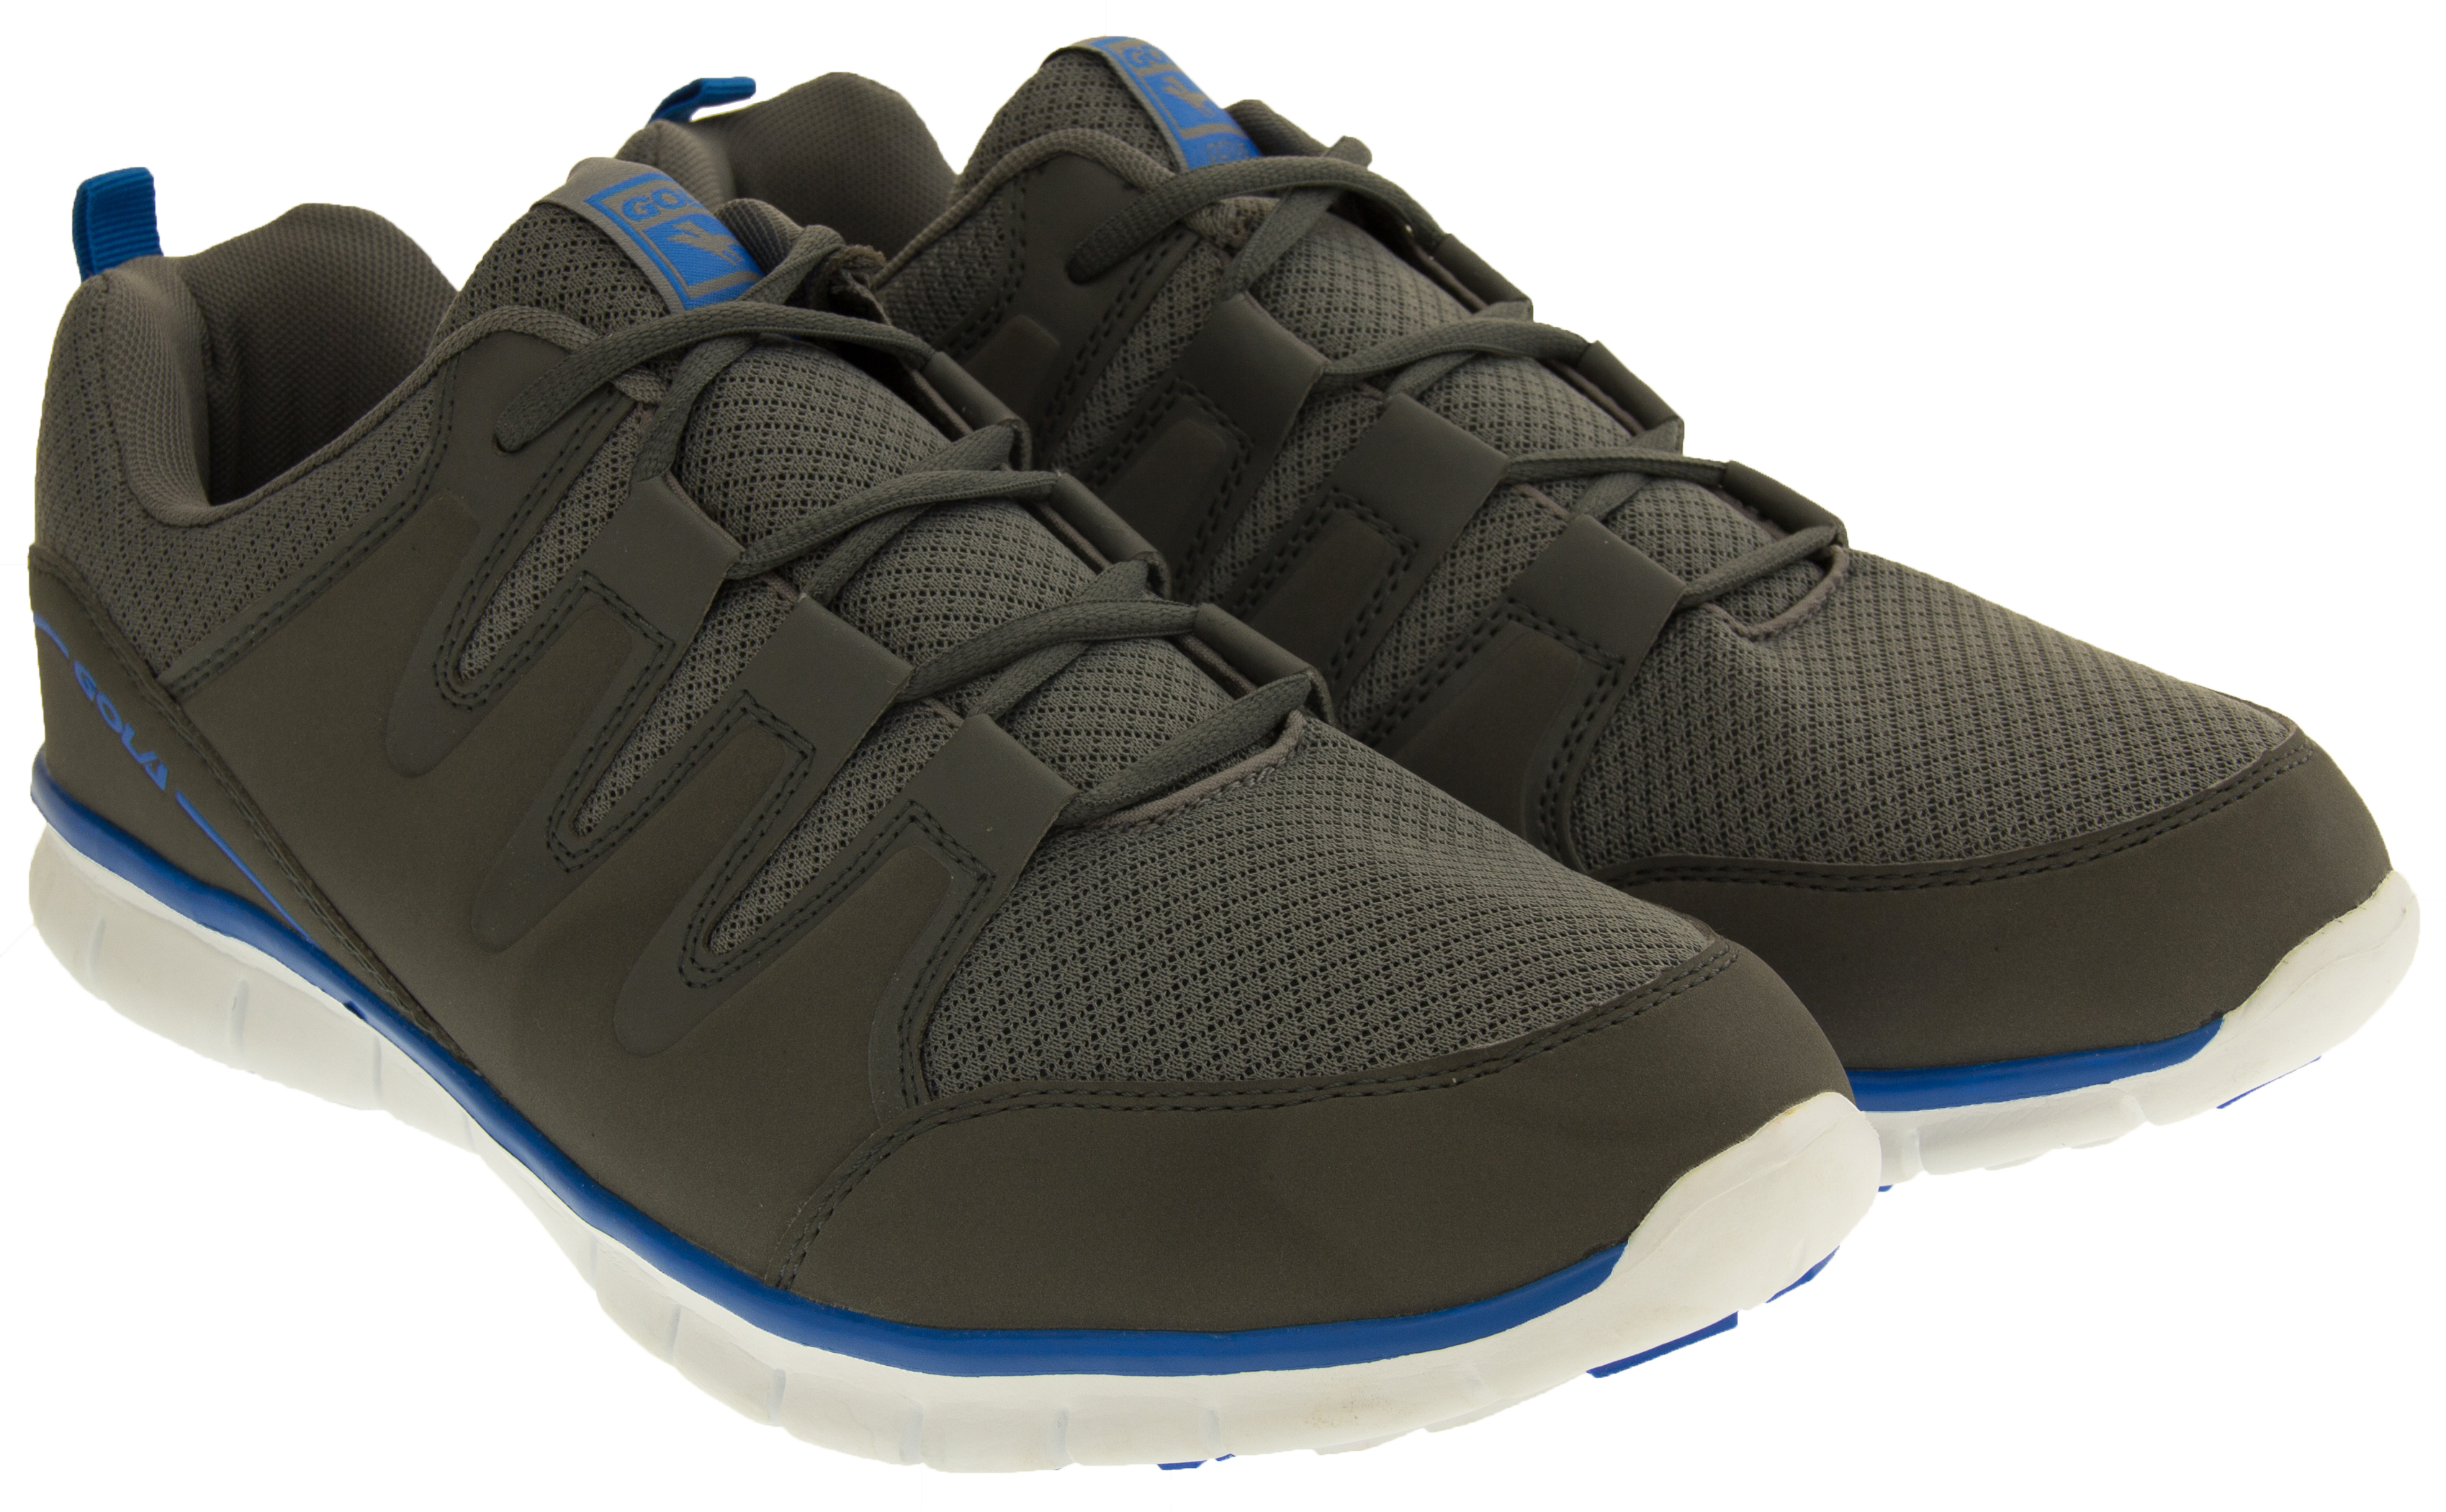 Women's Gola Active Speedplay Trainers  size 3  **SALE**  - only £10 POST FREE